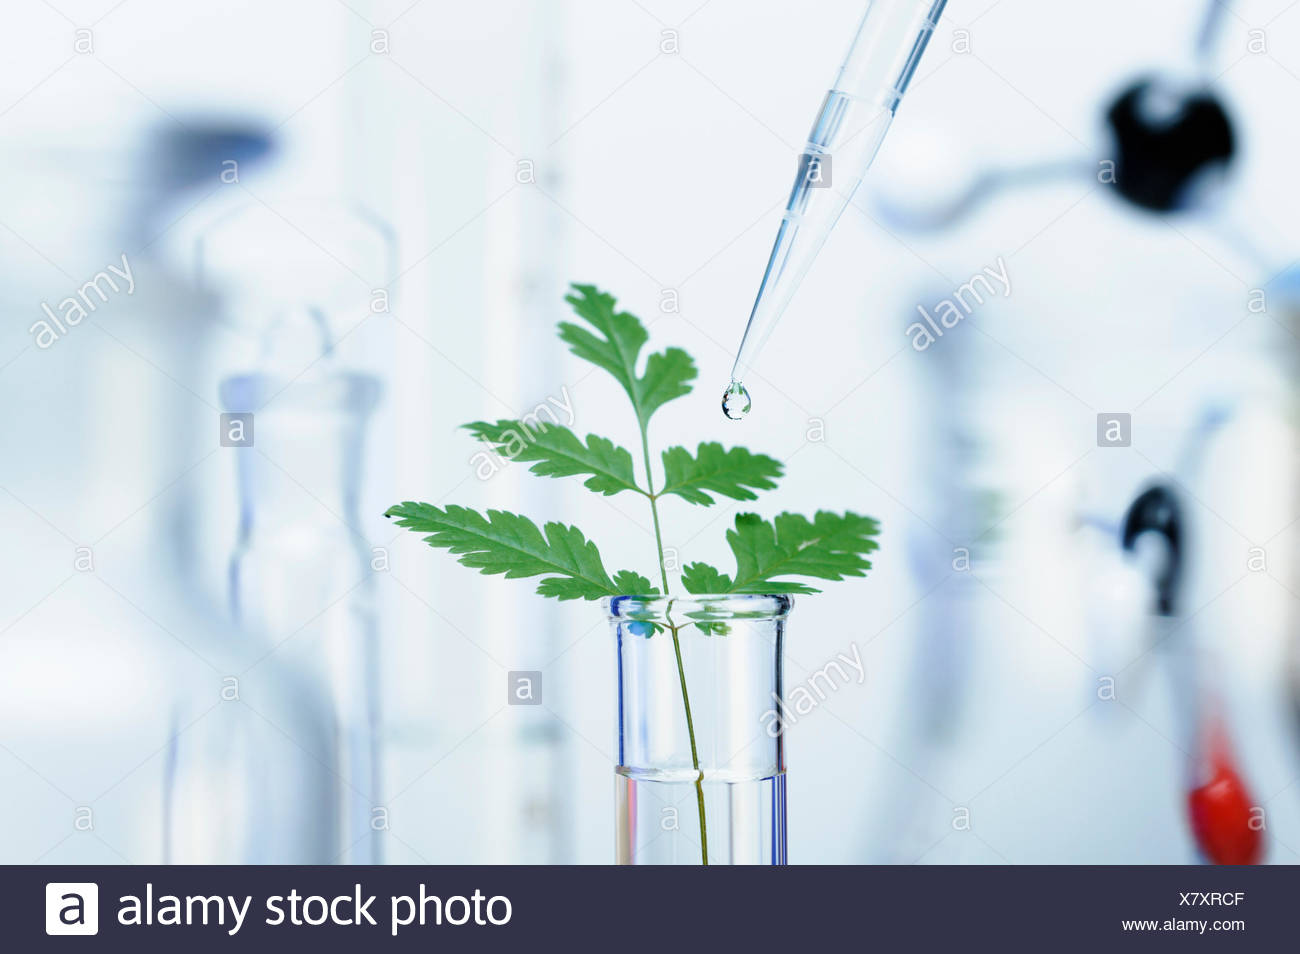 Biotechnology research precision micropipette - Stock Image